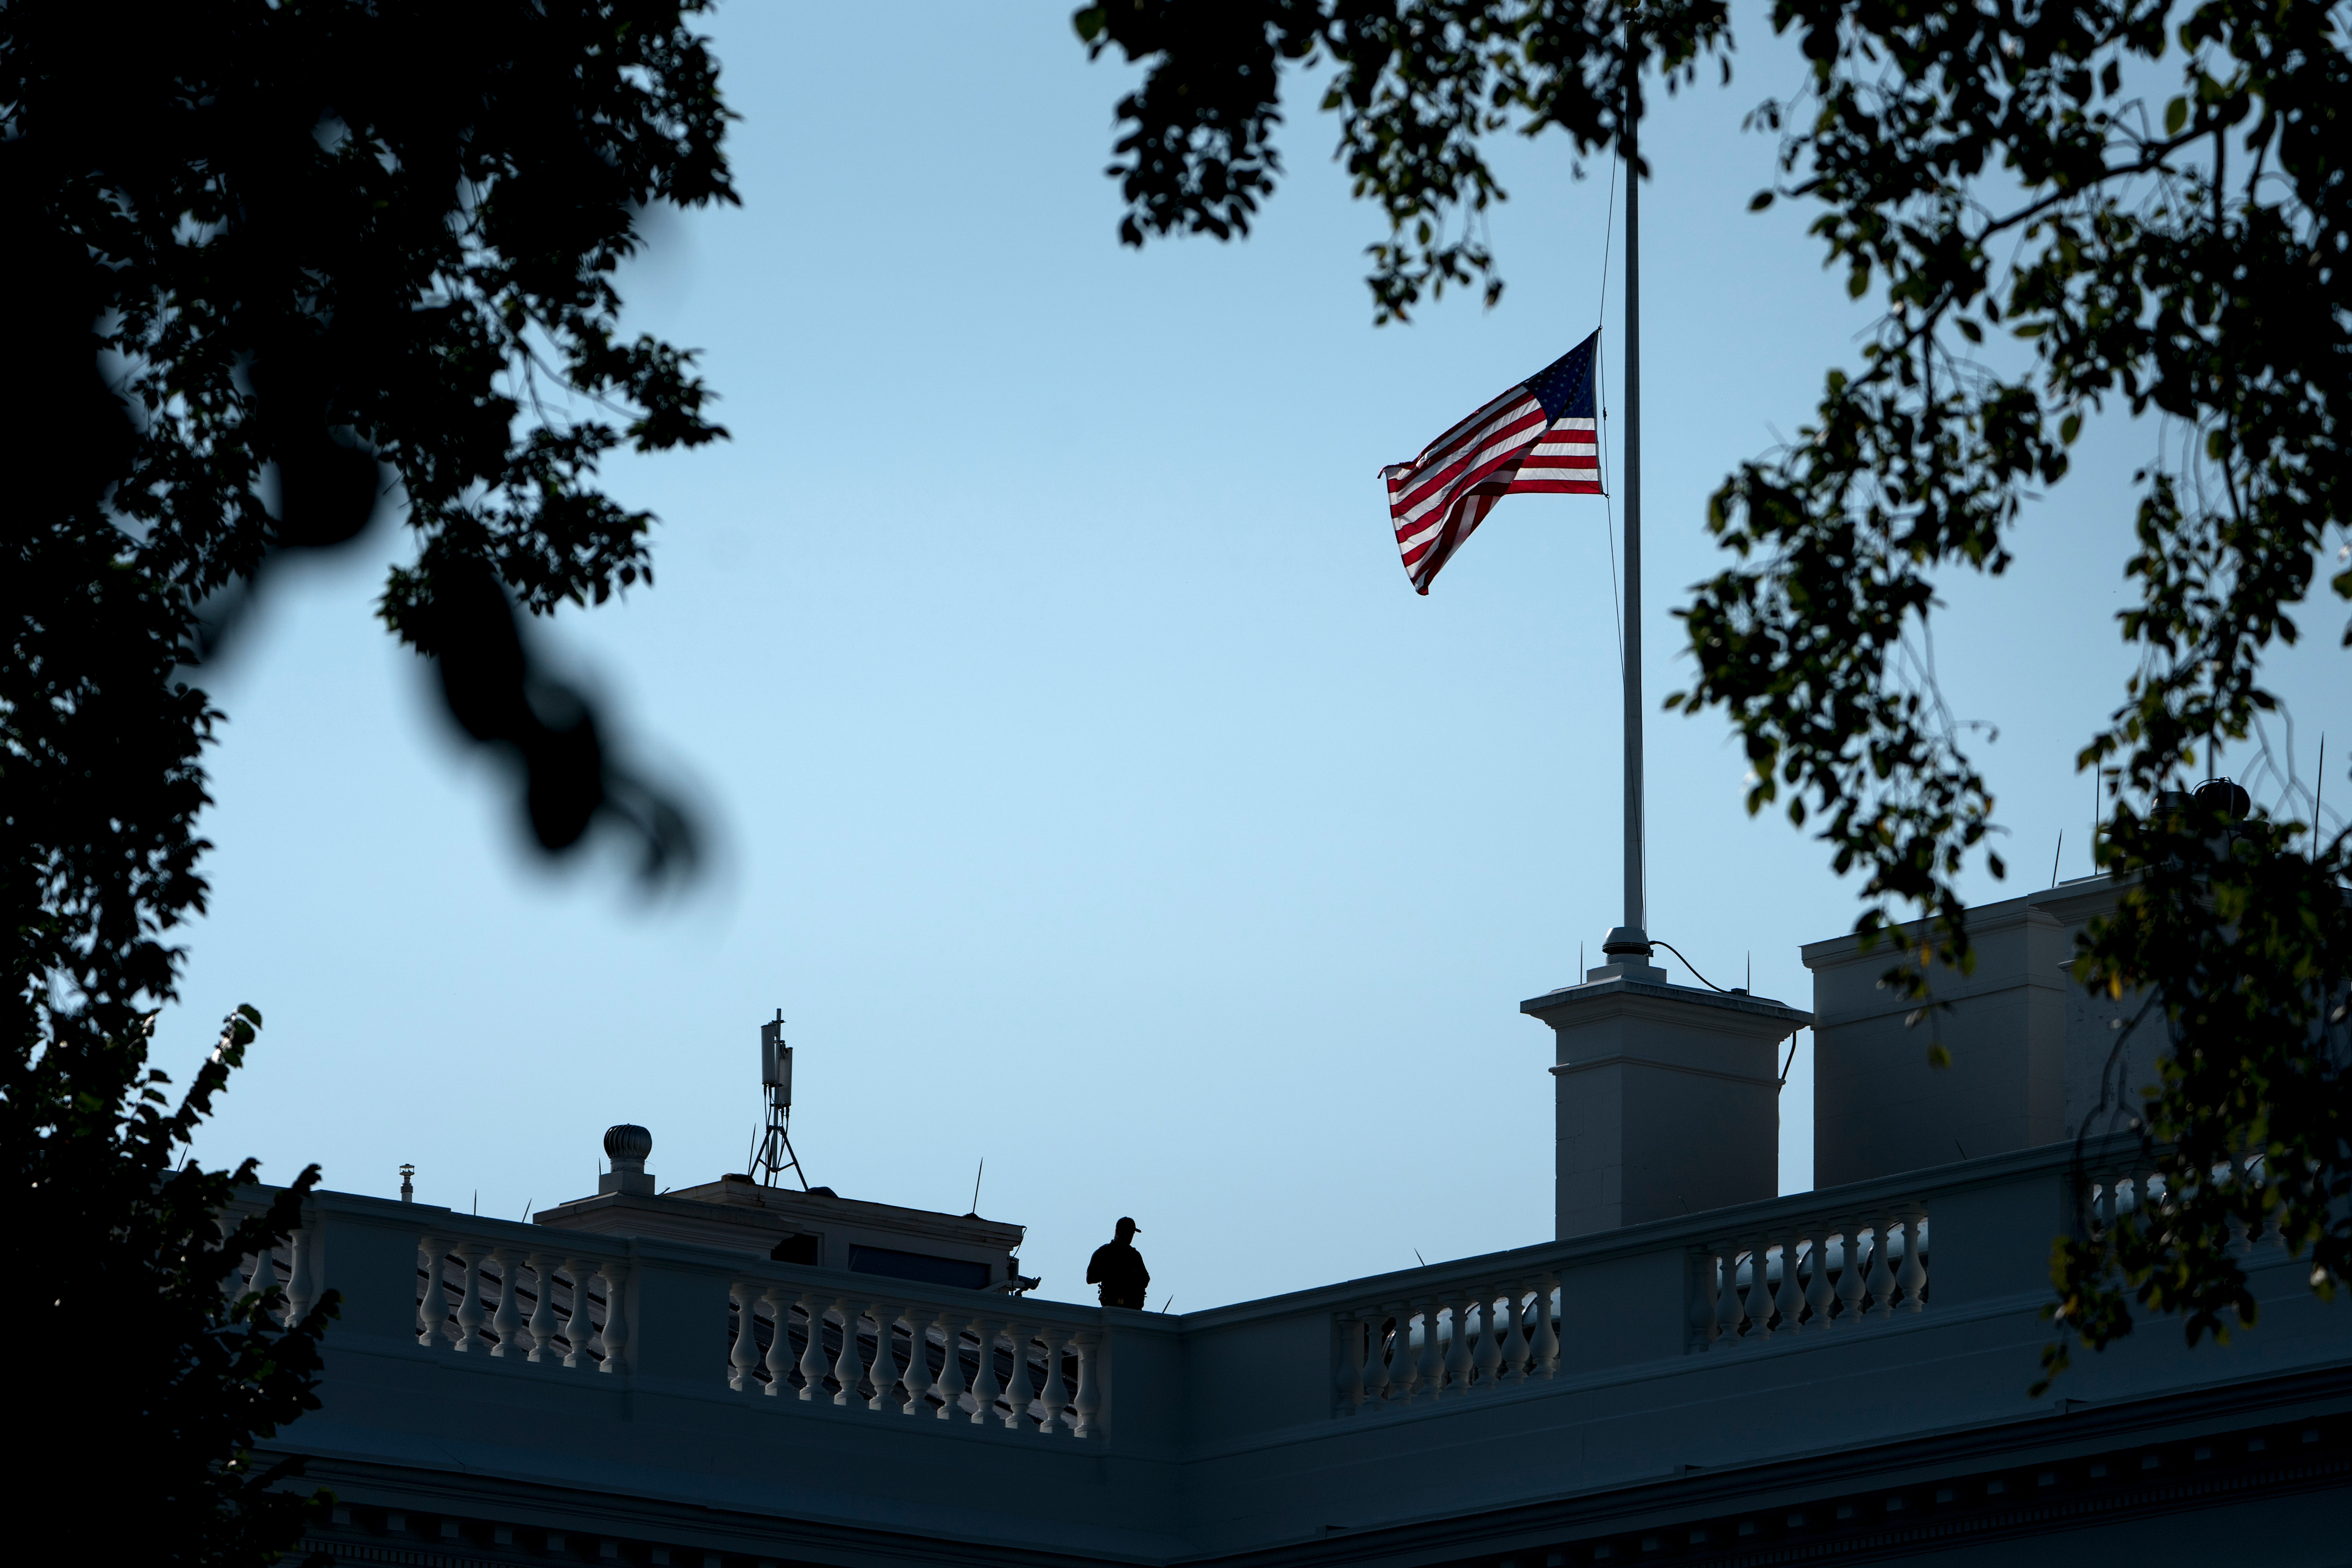 The flag over the White House flies at half staff Sunday after the death of Senator John McCain.